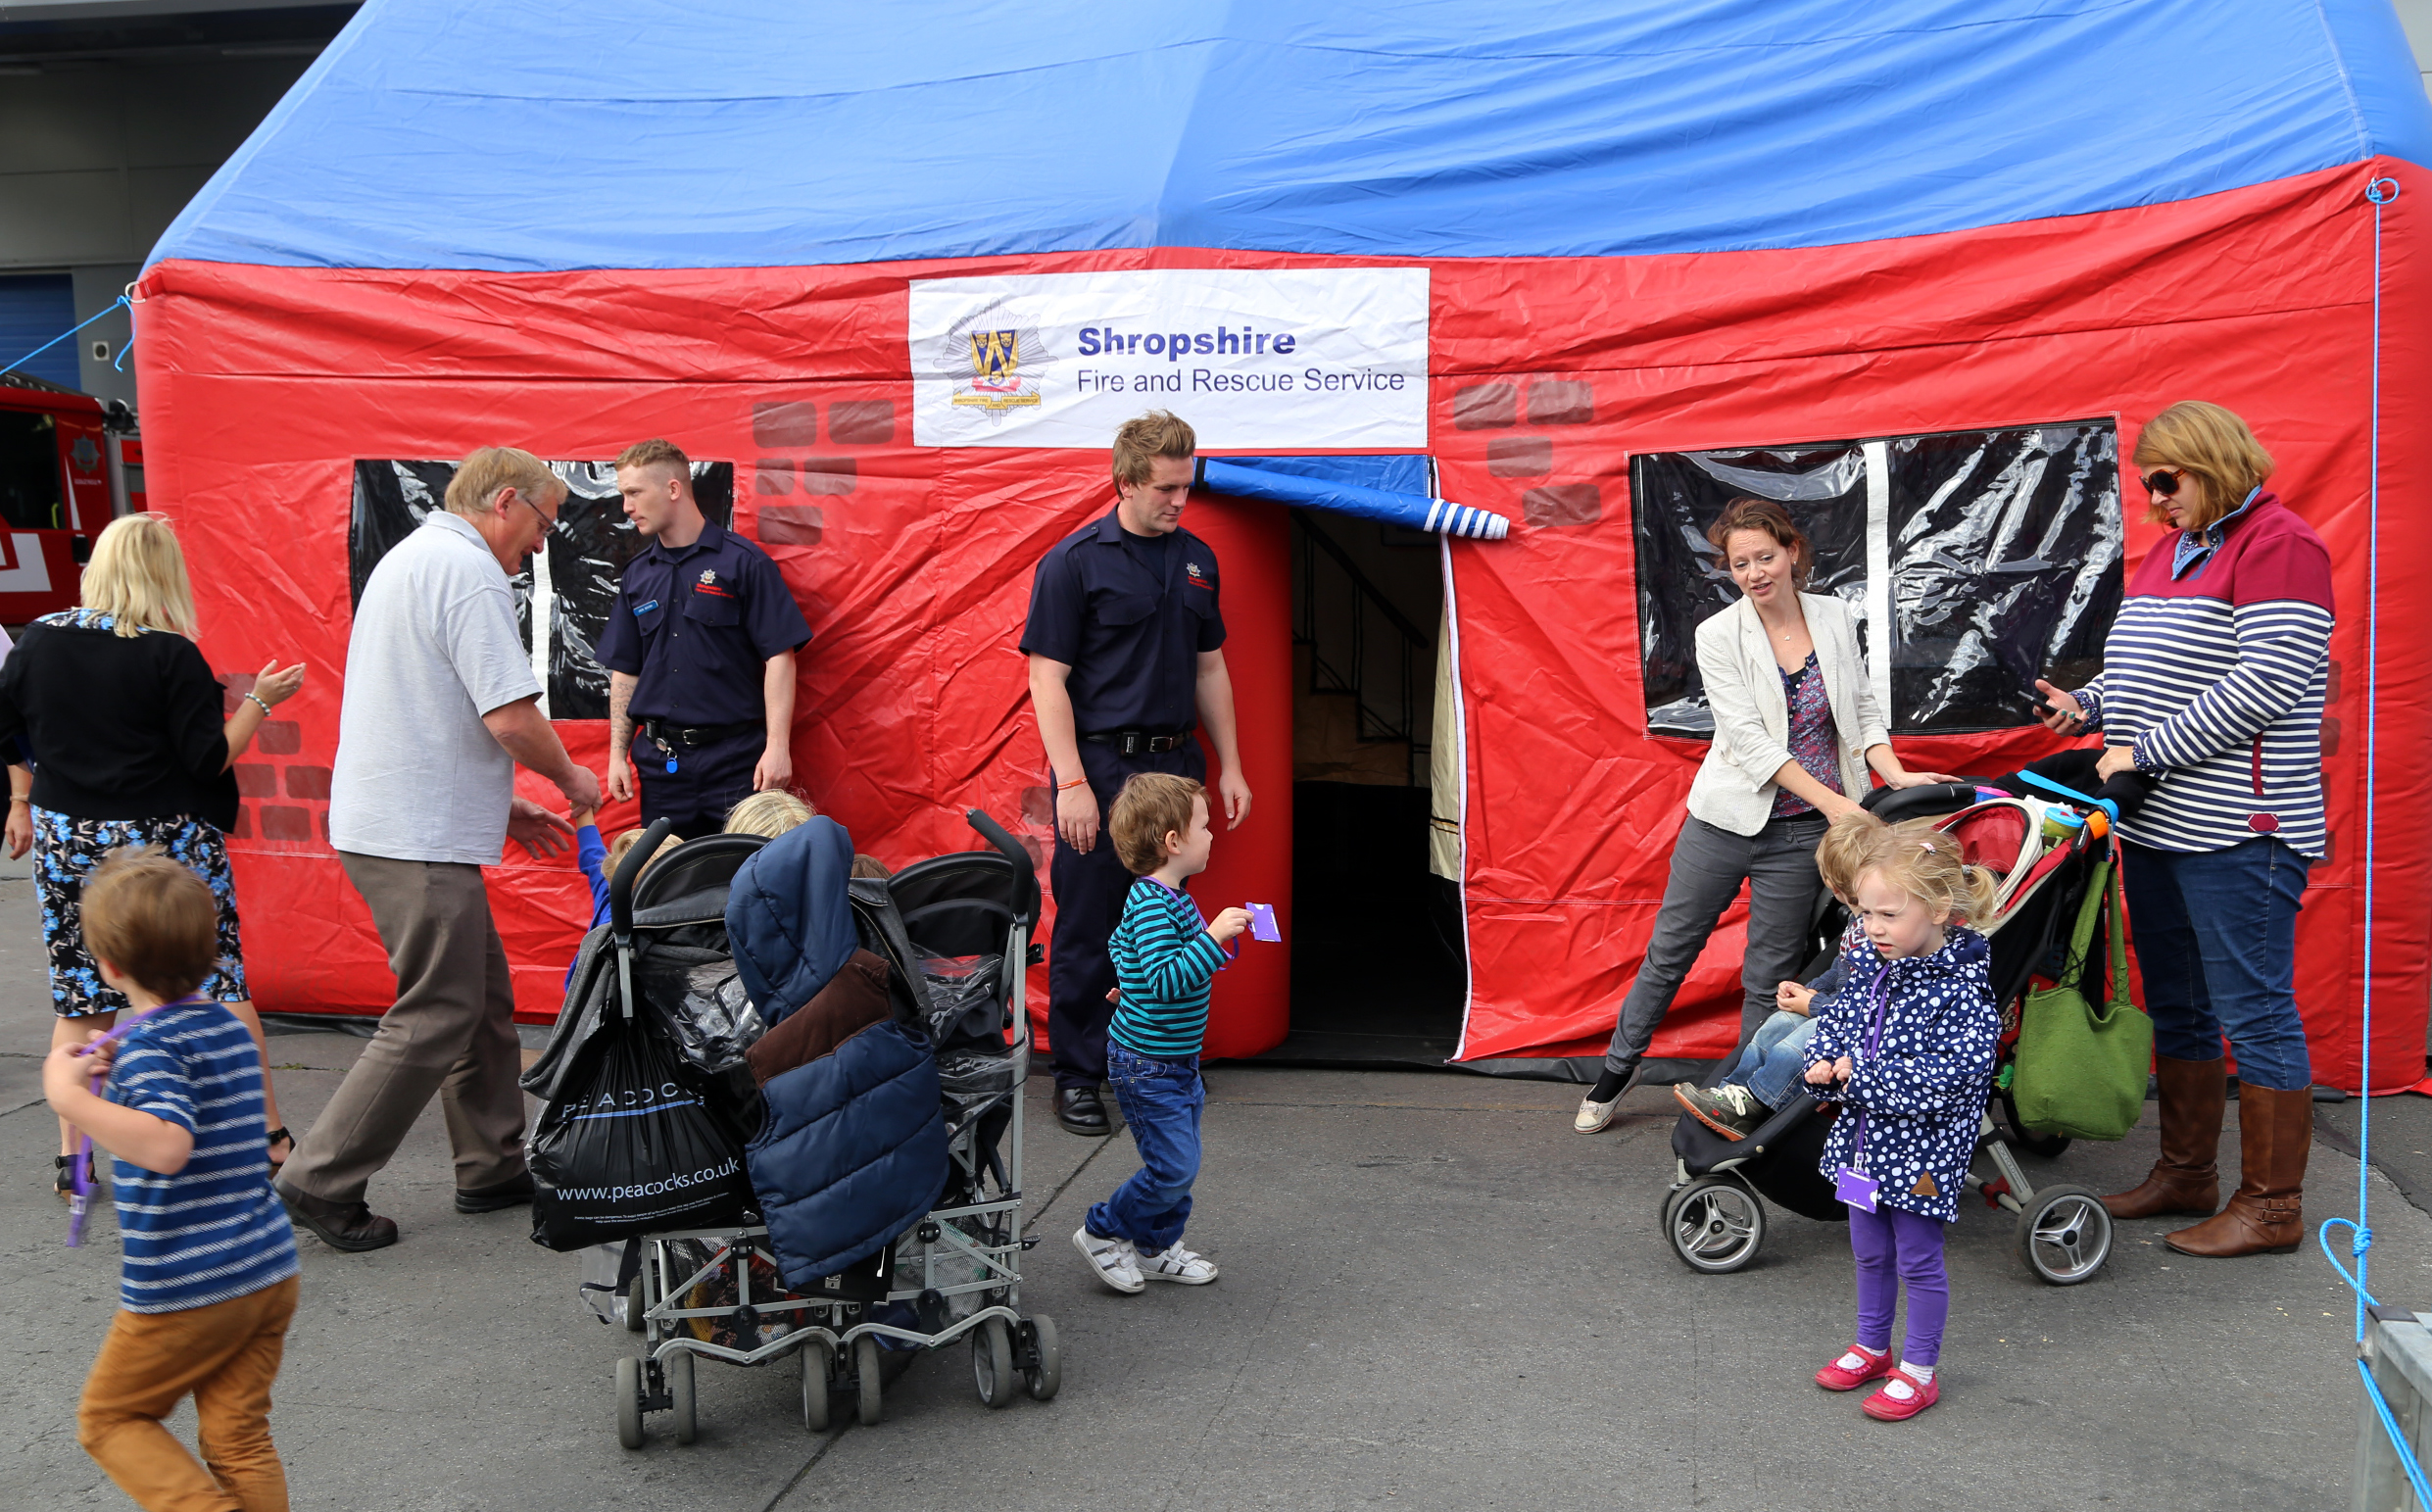 Plenty of visits to the educational smoke tent